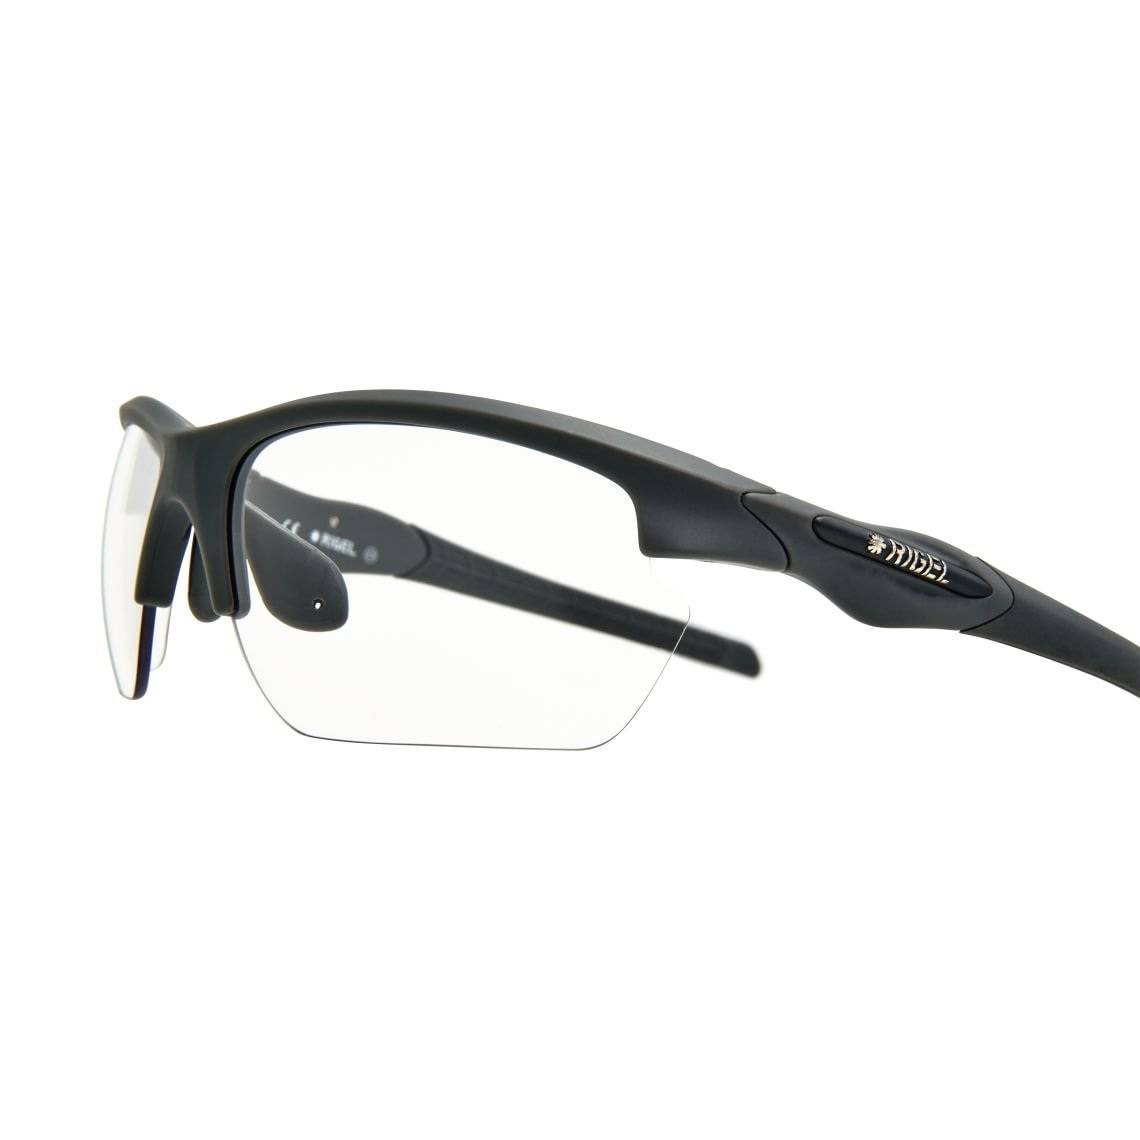 RIGEL Photochromic Champ C5 7219